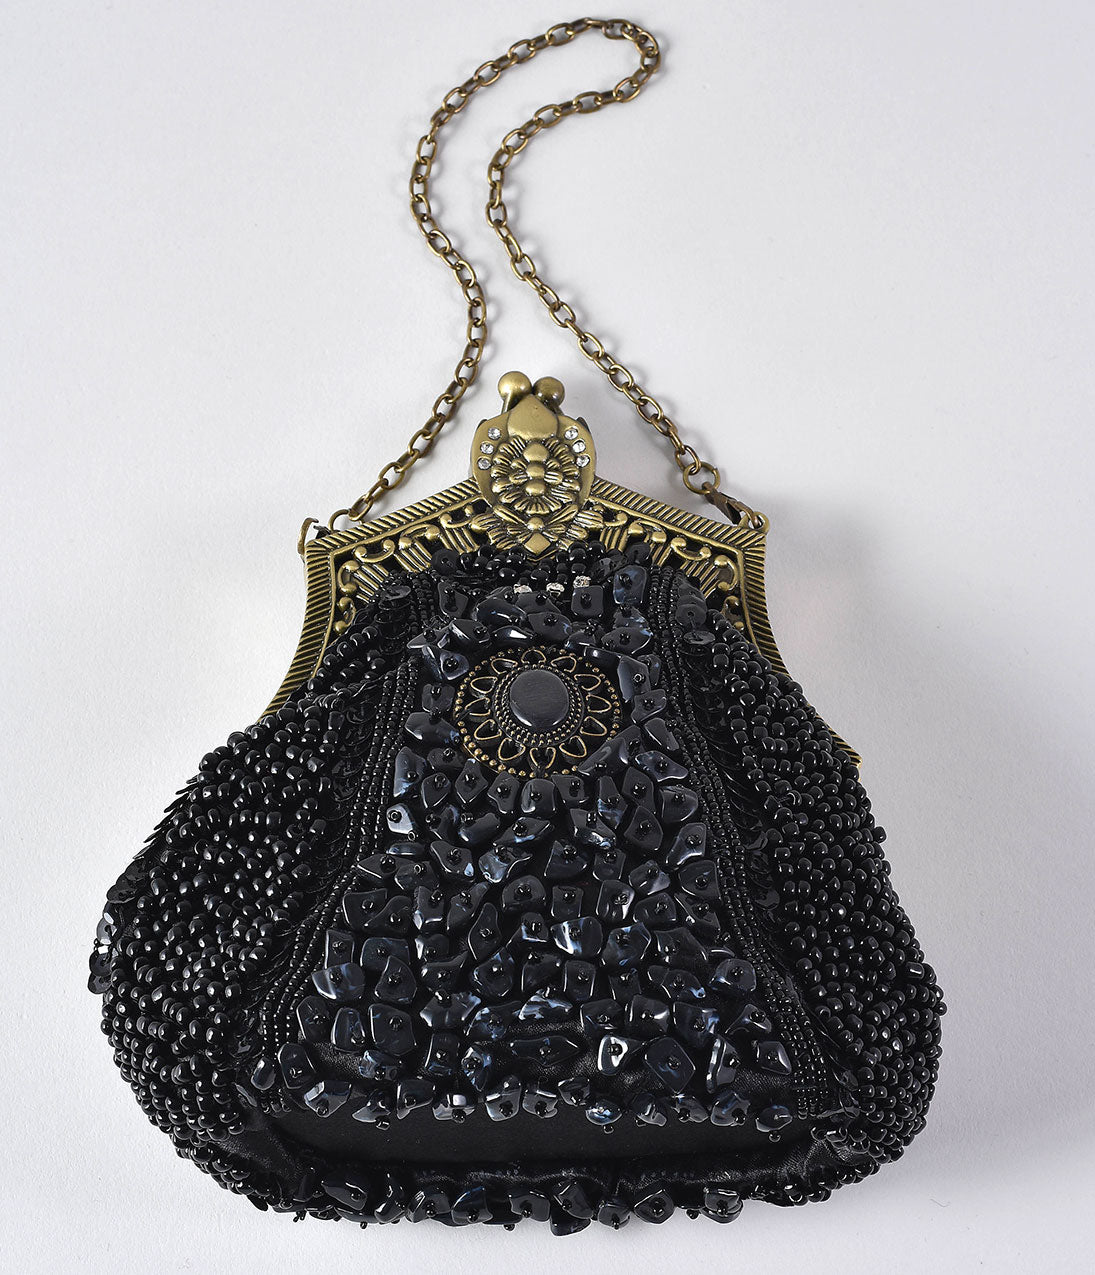 1920s Accessories | Great Gatsby Accessories Guide Unique Vintage 1920S Style Black Beaded Top Frame Flapper Purse $72.00 AT vintagedancer.com